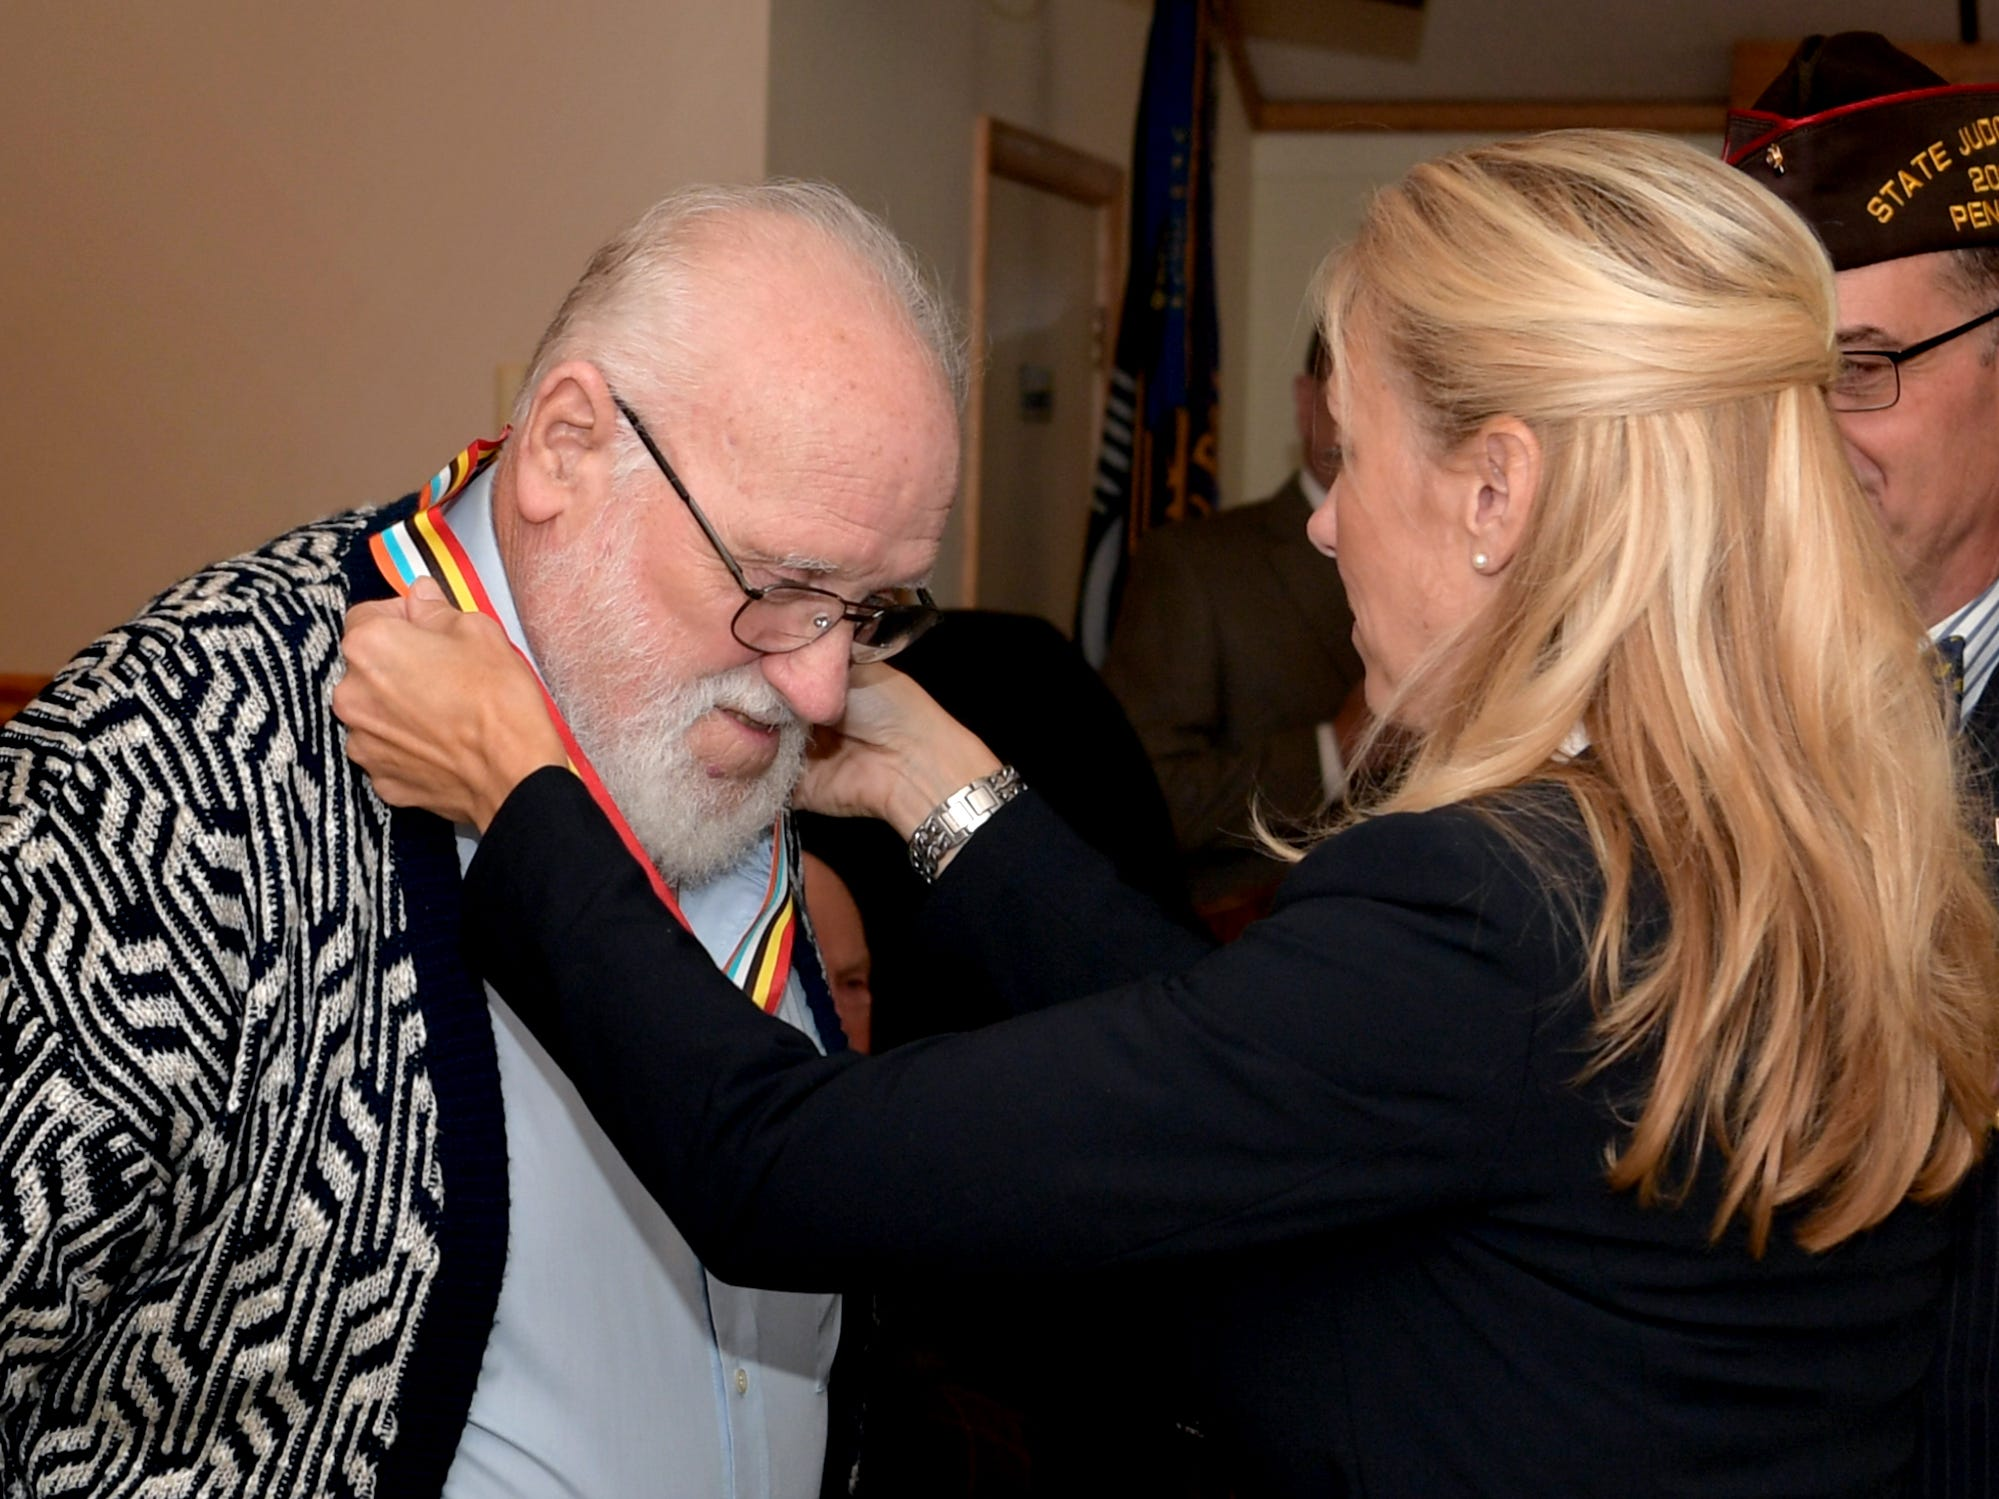 Korean War veteran Earl Hanshaw of Dillsburg receives an Ambassador for Peace Medal from PA State Representative Dawn Keefer during a ceremony at the James A. Danner VFW Post #537 in Newberry Township Thursday, Sept. 27, 2018. Hanshaw and five other Korean War veterans received the medals, issued by the Korean government, during the event. Keefer sponsored the event in conjunction with U.S. Senator Pat Toomey's office, which assisted in procuring the medals. Bill Kalina photo